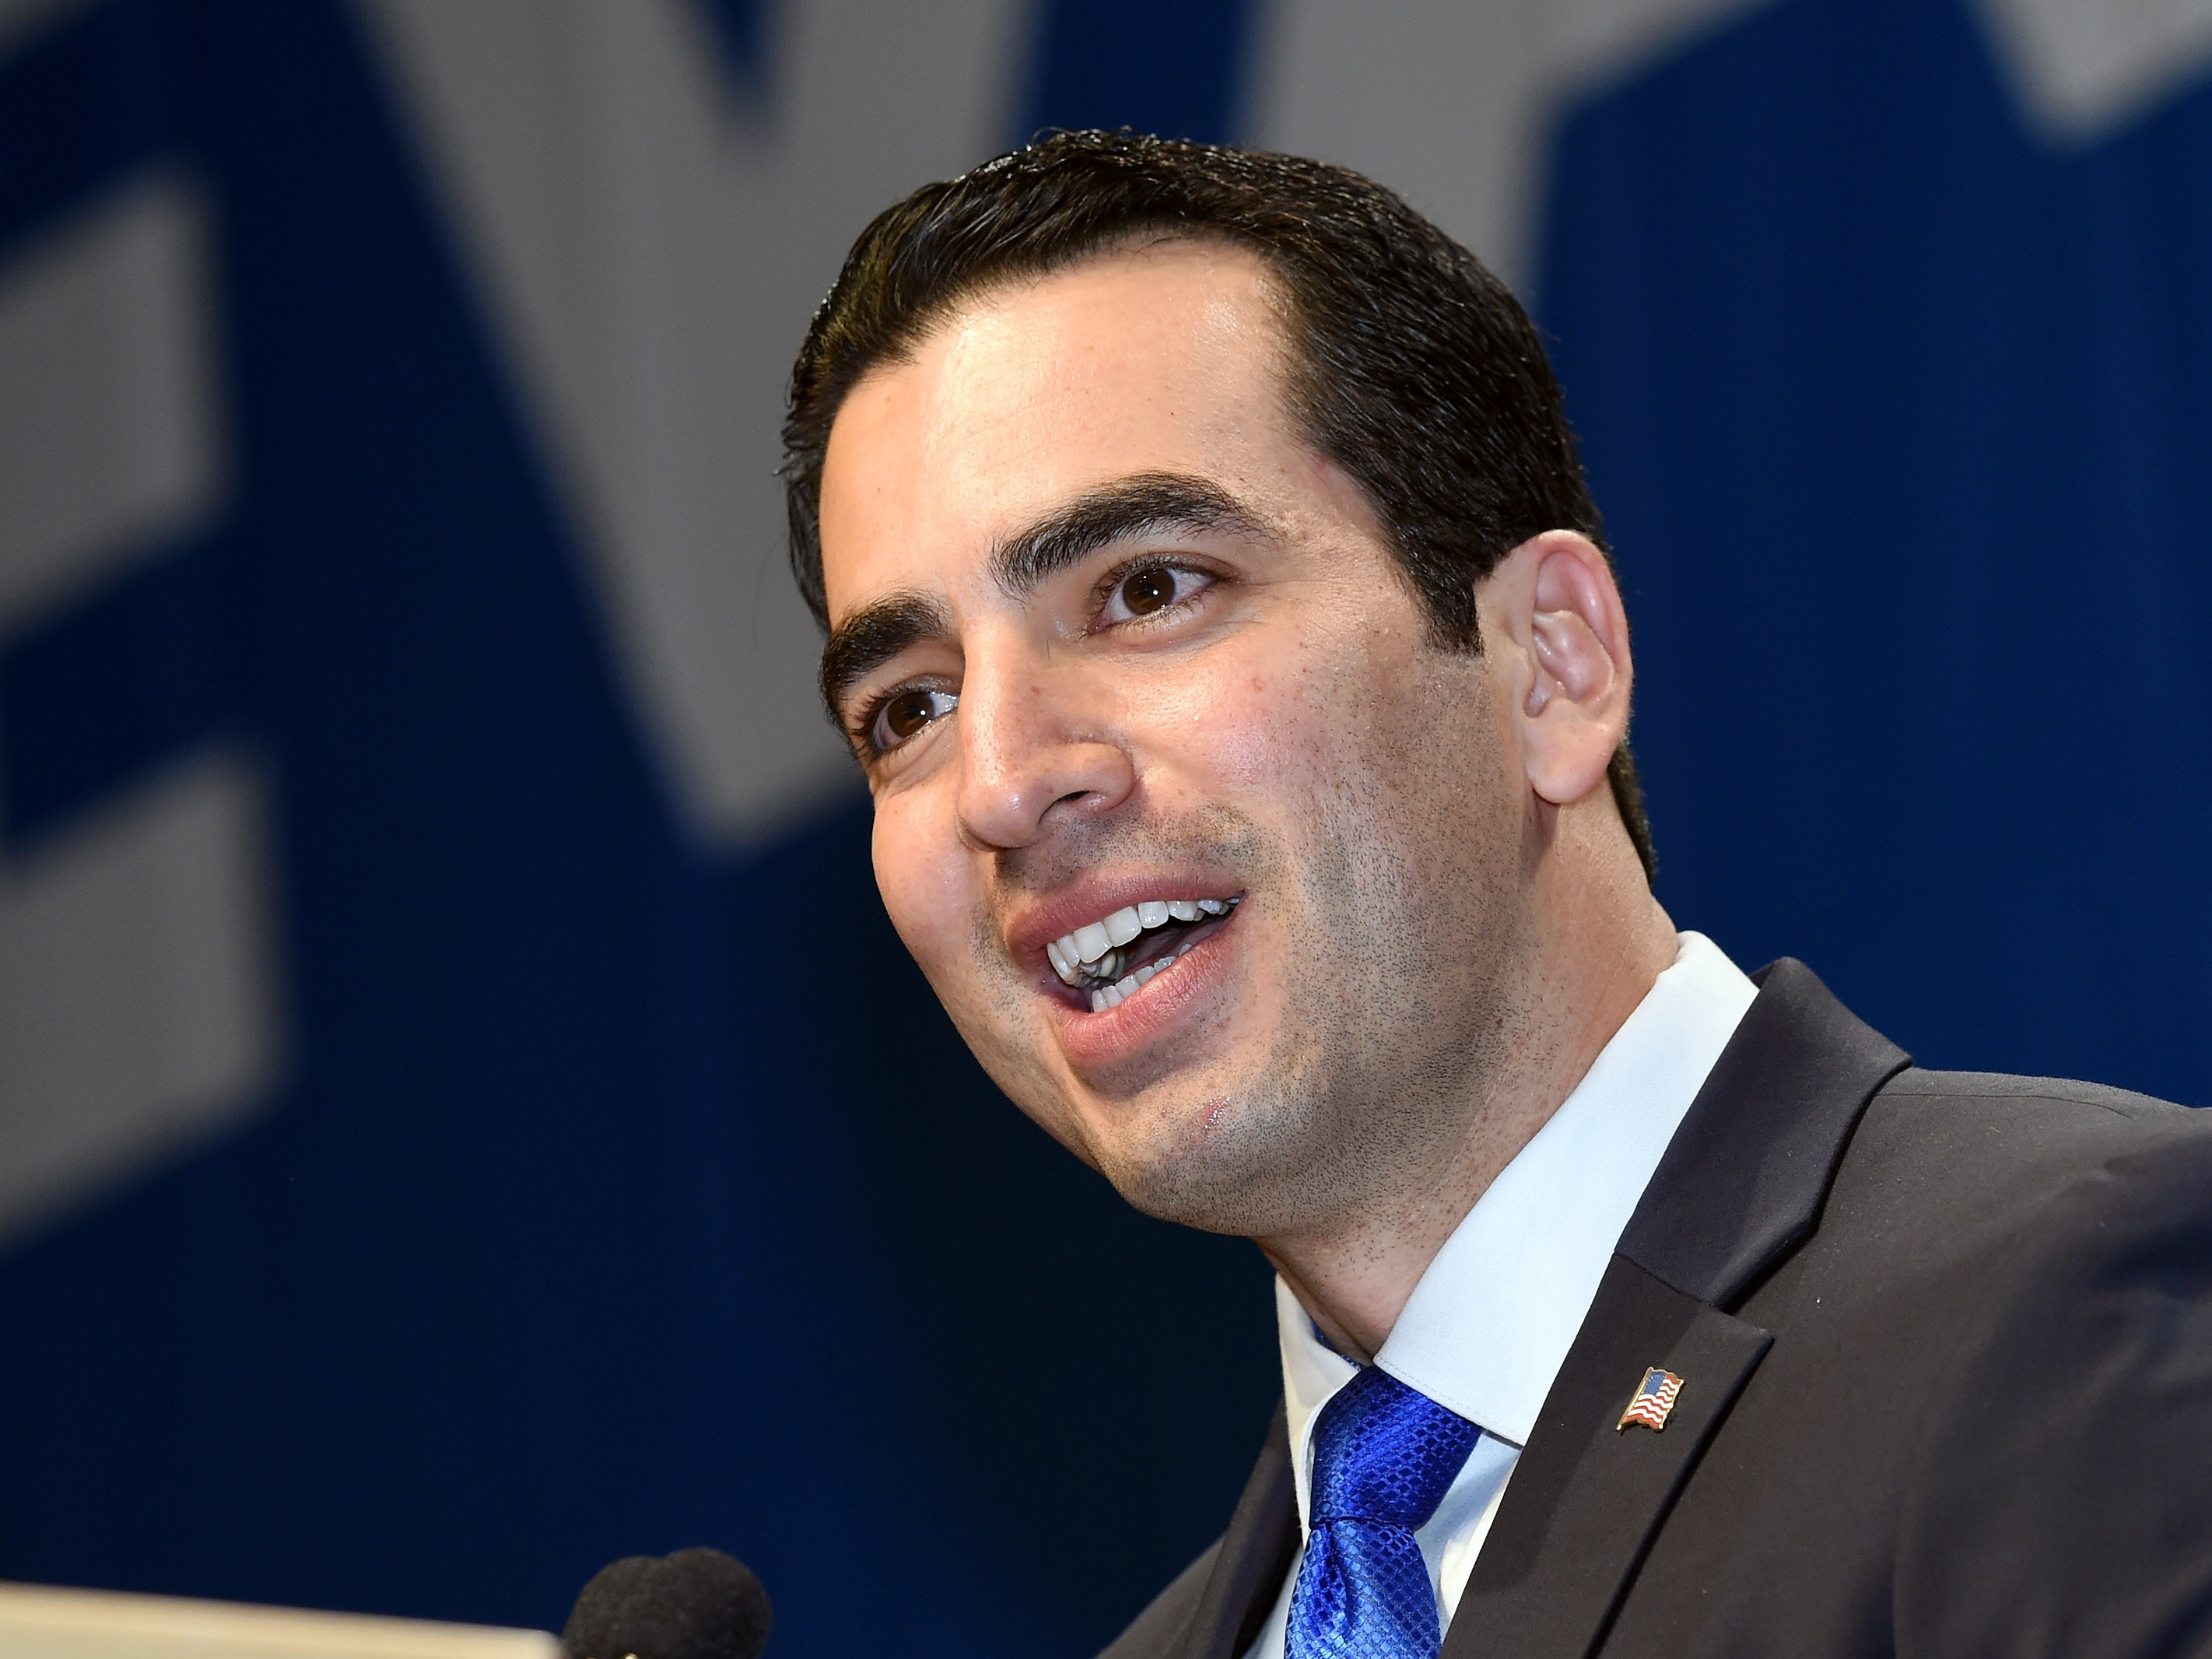 Rep. Ruben Kihuen won't seek re-election amid sexual harassment allegations